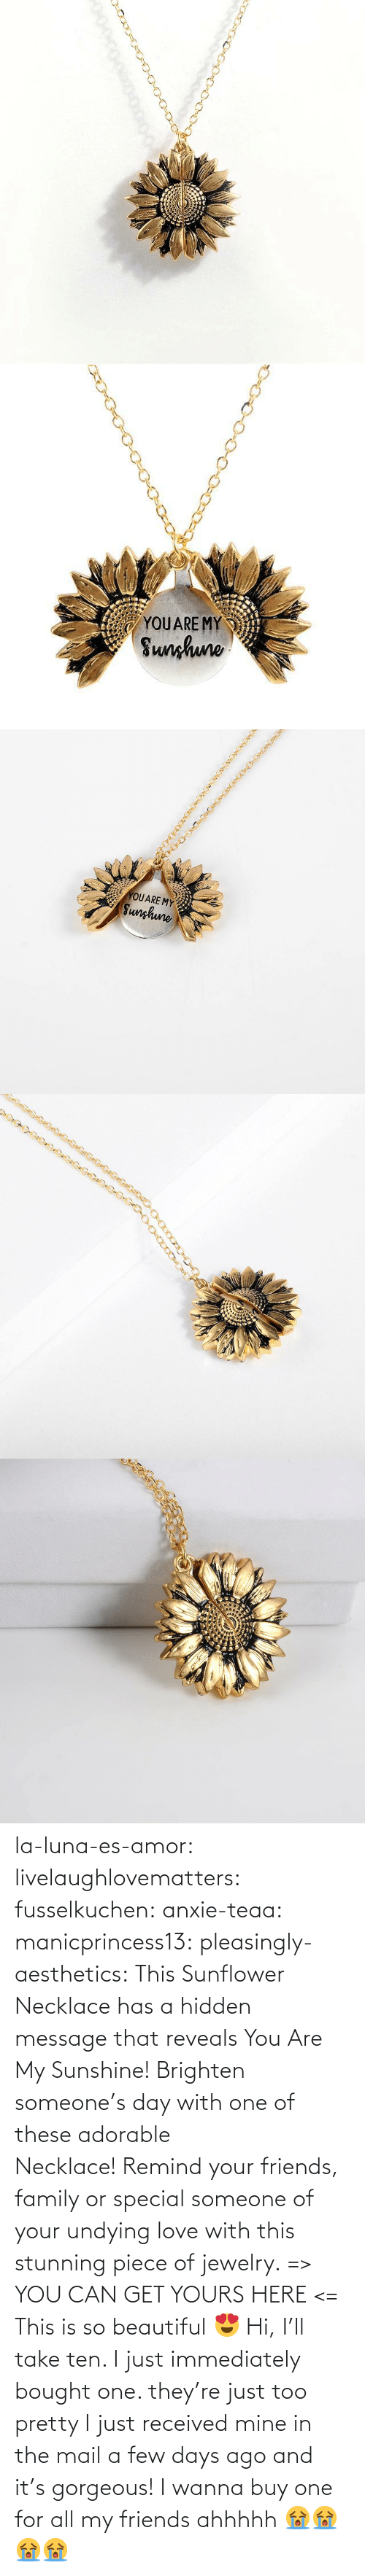 Beautiful, Family, and Friends: YOUARE MY  Sunhuno   YOUARE MY  Sunghune la-luna-es-amor:  livelaughlovematters: fusselkuchen:  anxie-teaa:   manicprincess13:   pleasingly-aesthetics:  This Sunflower Necklace has a hidden message that reveals You Are My Sunshine! Brighten someone's day with one of these adorable Necklace! Remind your friends, family or special someone of your undying love with this stunning piece of jewelry. => YOU CAN GET YOURS HERE <=   This is so beautiful 😍    Hi, I'll take ten.    I just immediately bought one. they're just too pretty   I just received mine in the mail a few days ago and it's gorgeous!   I wanna buy one for all my friends ahhhhh 😭😭😭😭